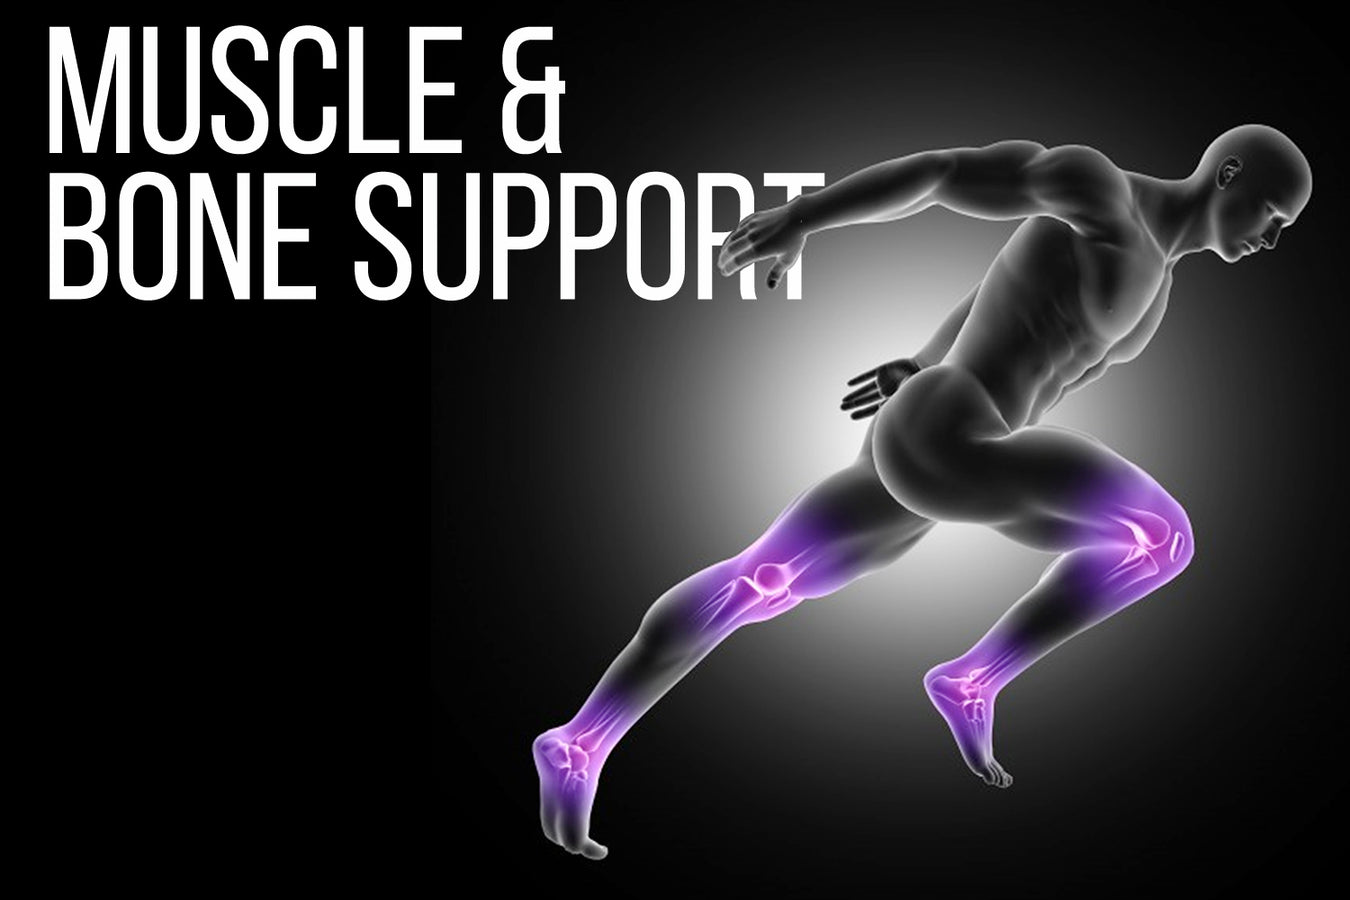 MUSCLE & BONE SUPPORT